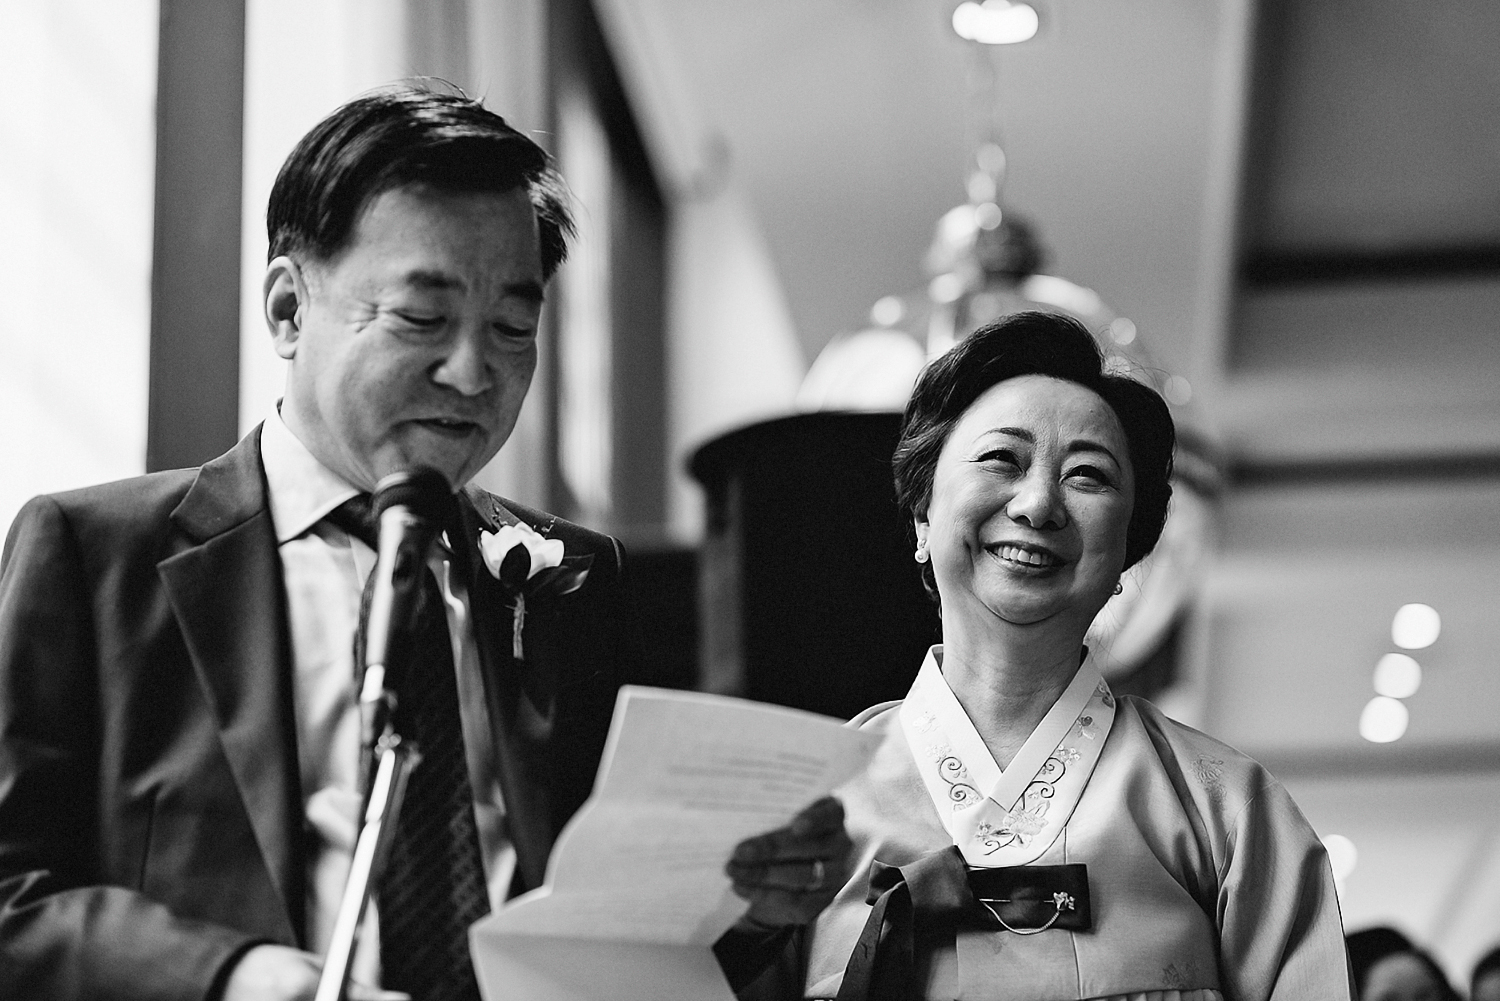 Best-Wedding-Photographers-Toronto_-Urban-City-Wedding-Photography-Downtown-Toronto-Photographer_Vintage-Bride-and-Groom-Details_The-Chase-Wedding-Venue_Candid-Photojournalistic-Documentary-Reception-Speeches-.jpg